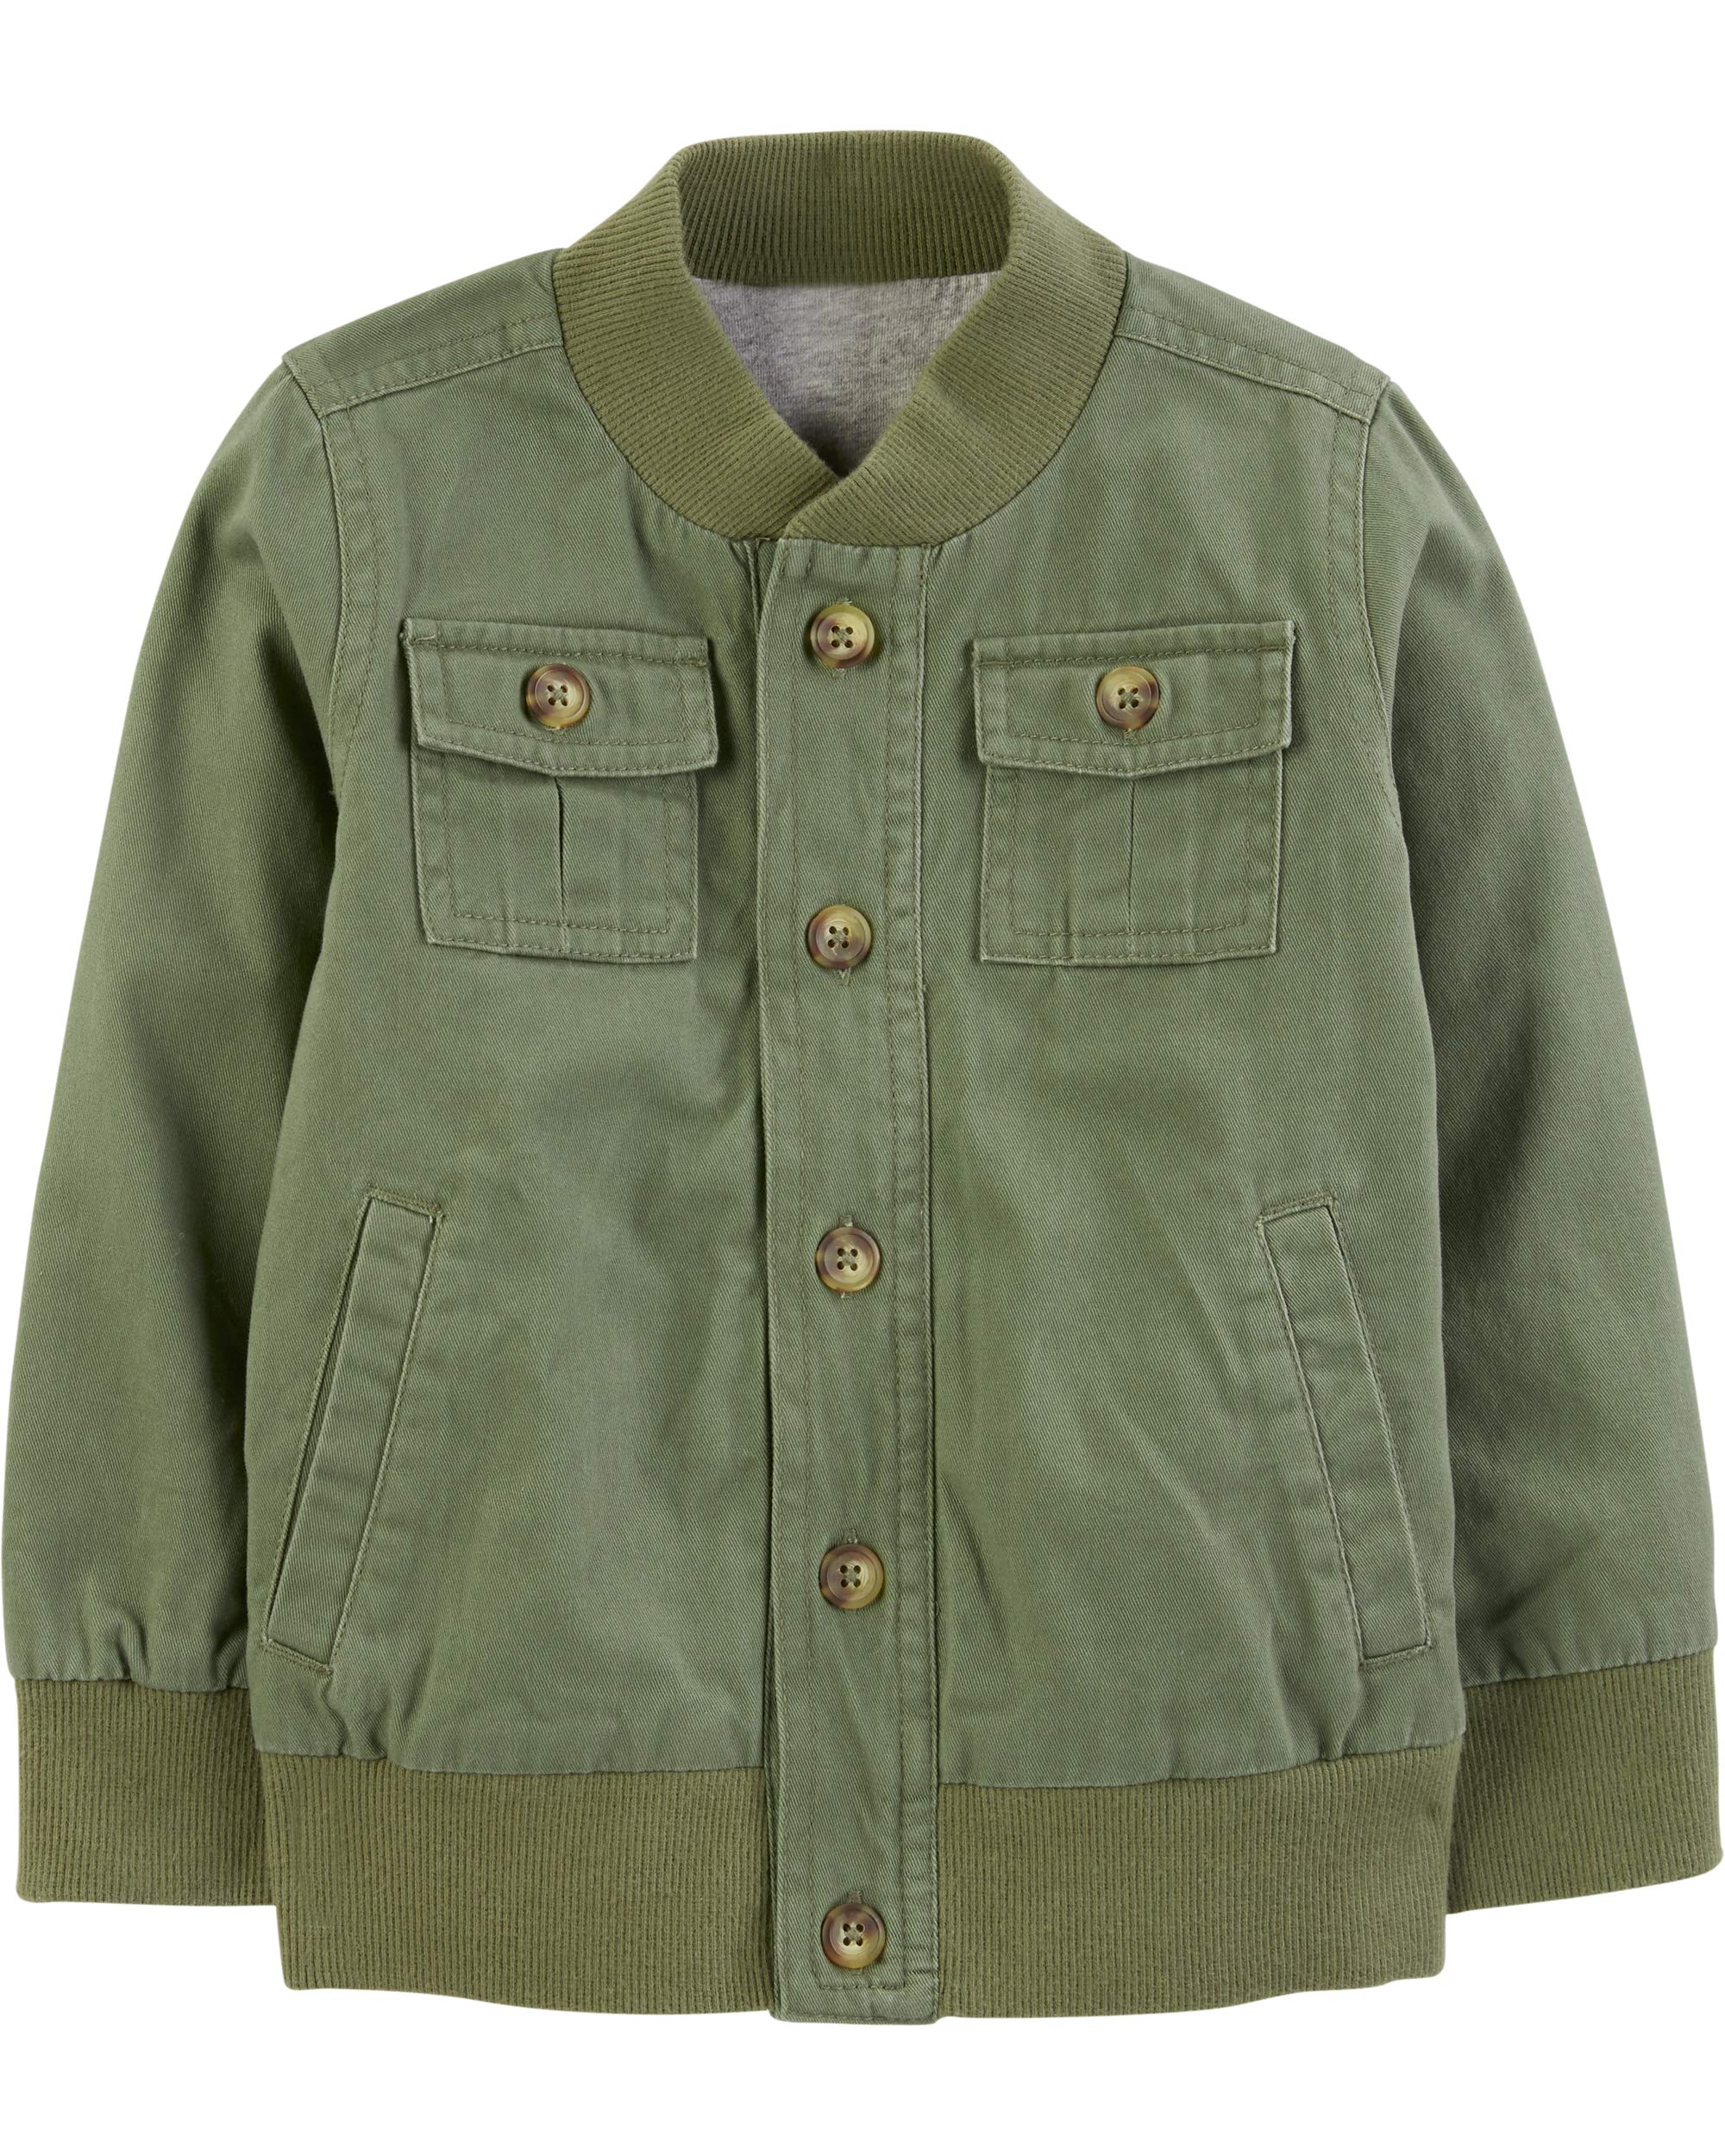 Simple Joys by Carter's Boys' Twill Button up Jacket, Green, 12 Months by Simple Joys by Carter's